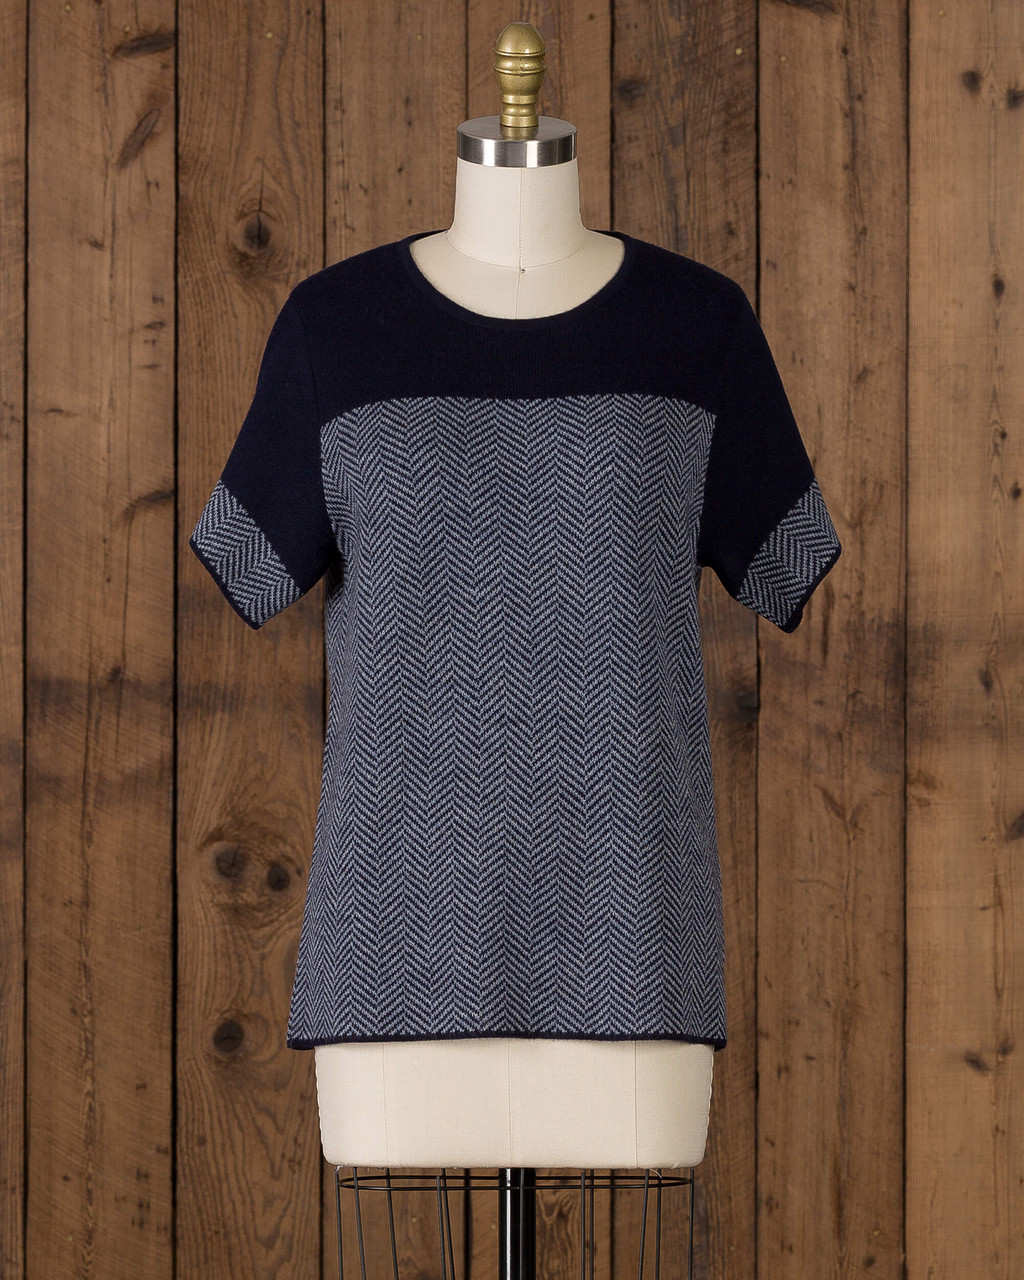 alicia adams alpaca alana top, womens alpaca sweater, lightweight womens alpaca top, alpaca sweater, alpaca vs cashmere, navy blue womens alpaca top